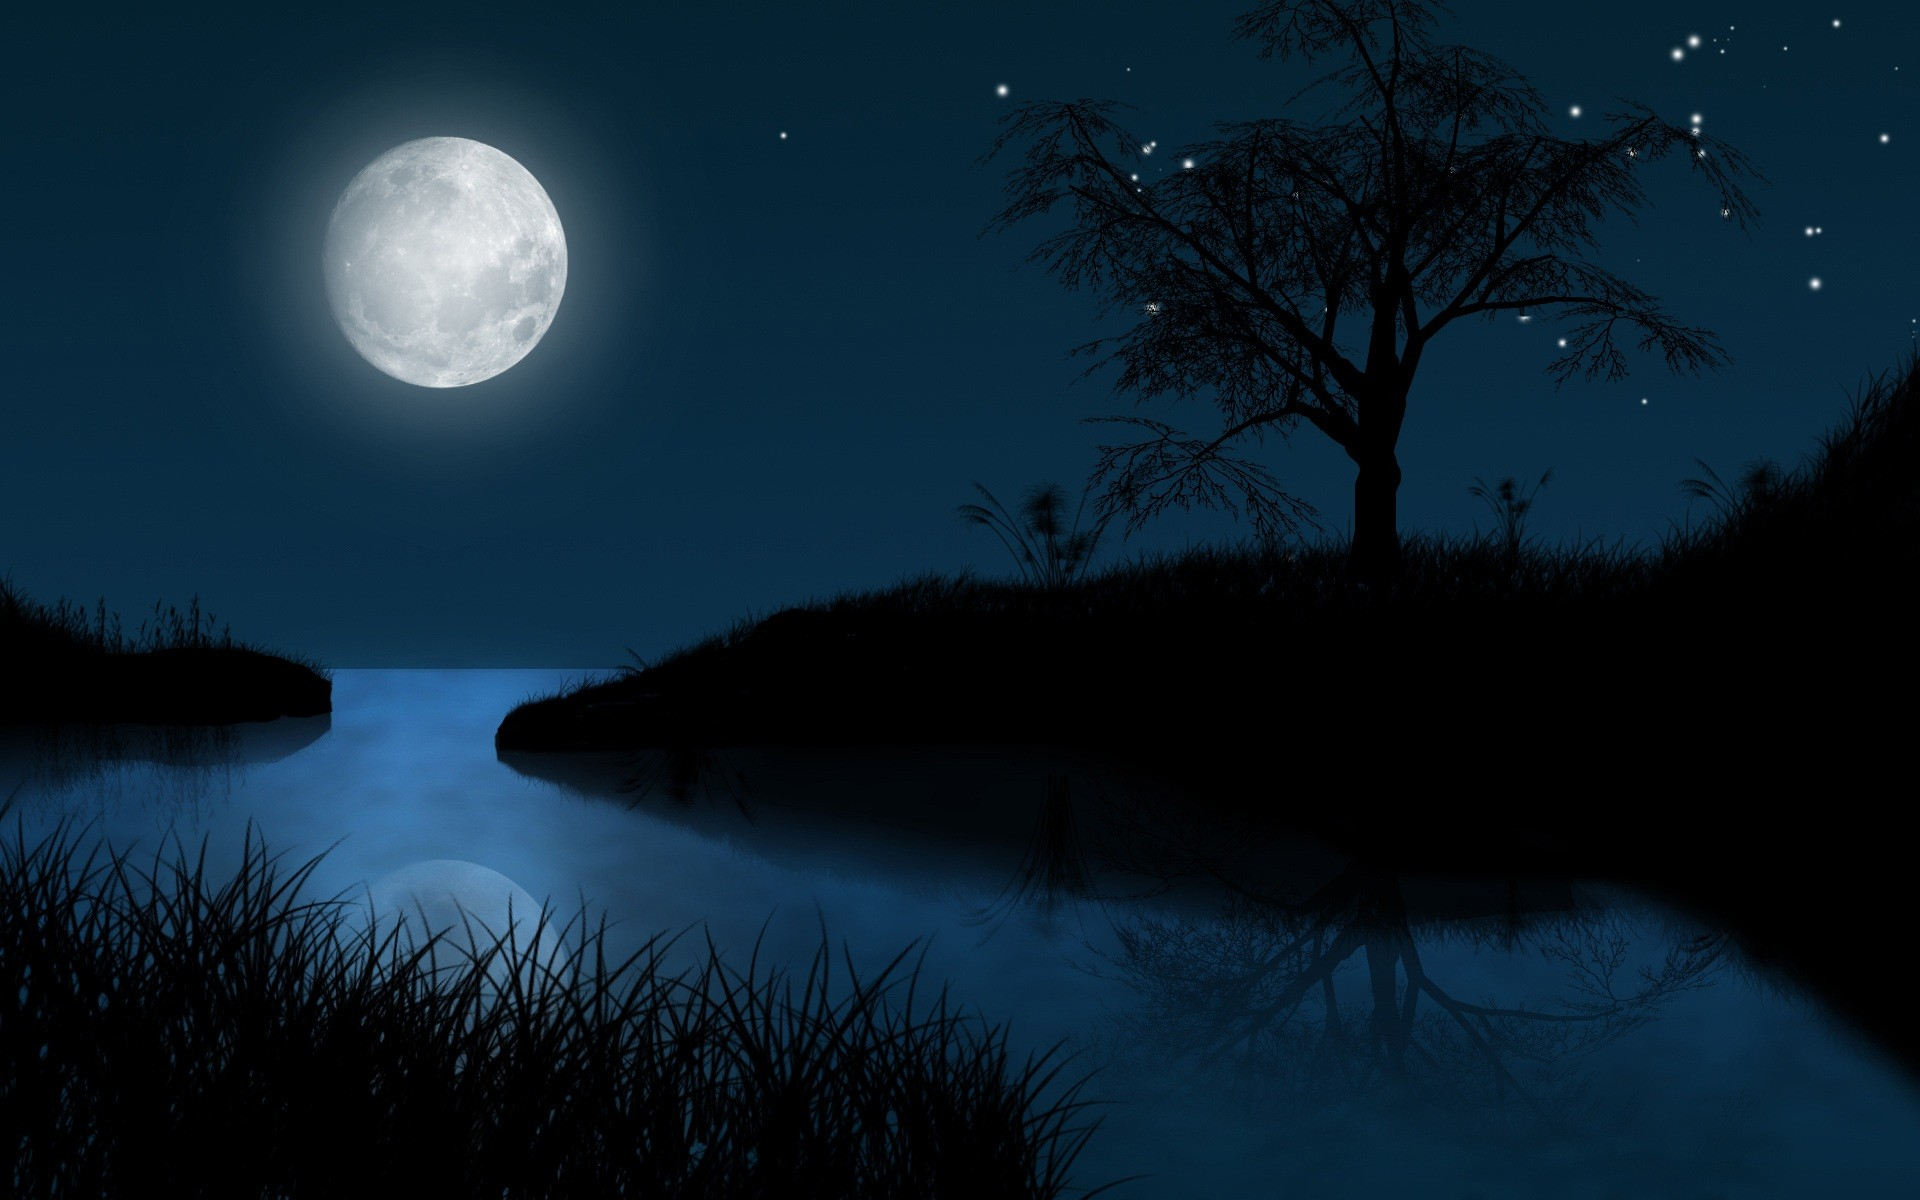 Moon At Night Clipart , HD Wallpaper & Backgrounds